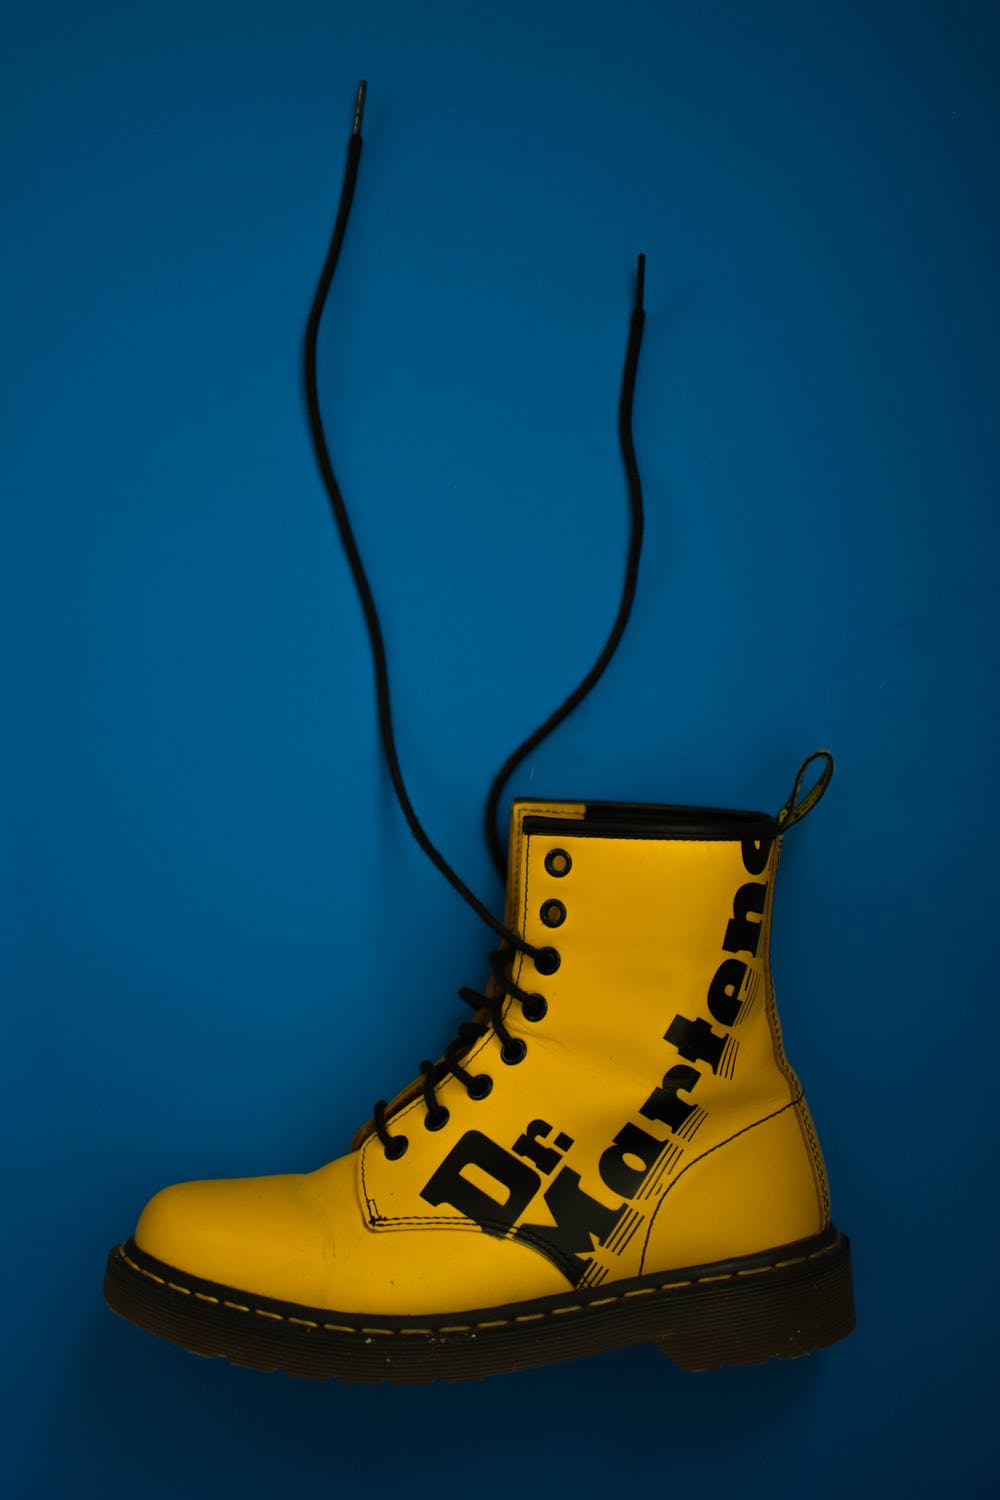 Yellow Dr. Martens lace-up boot. | Photo: Pexels